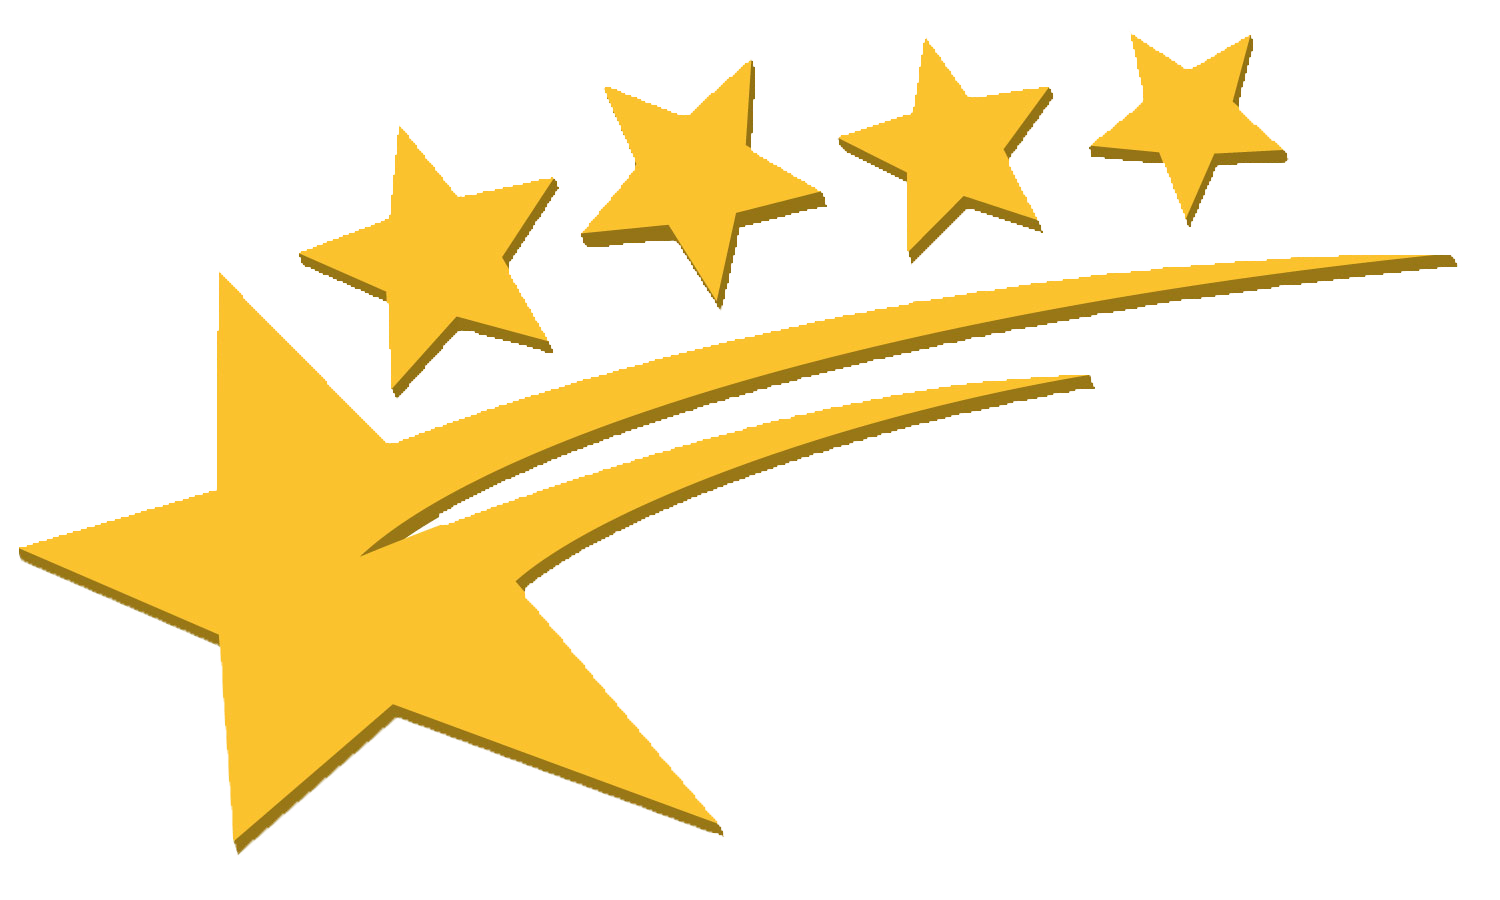 Five star png. Quality rated facility